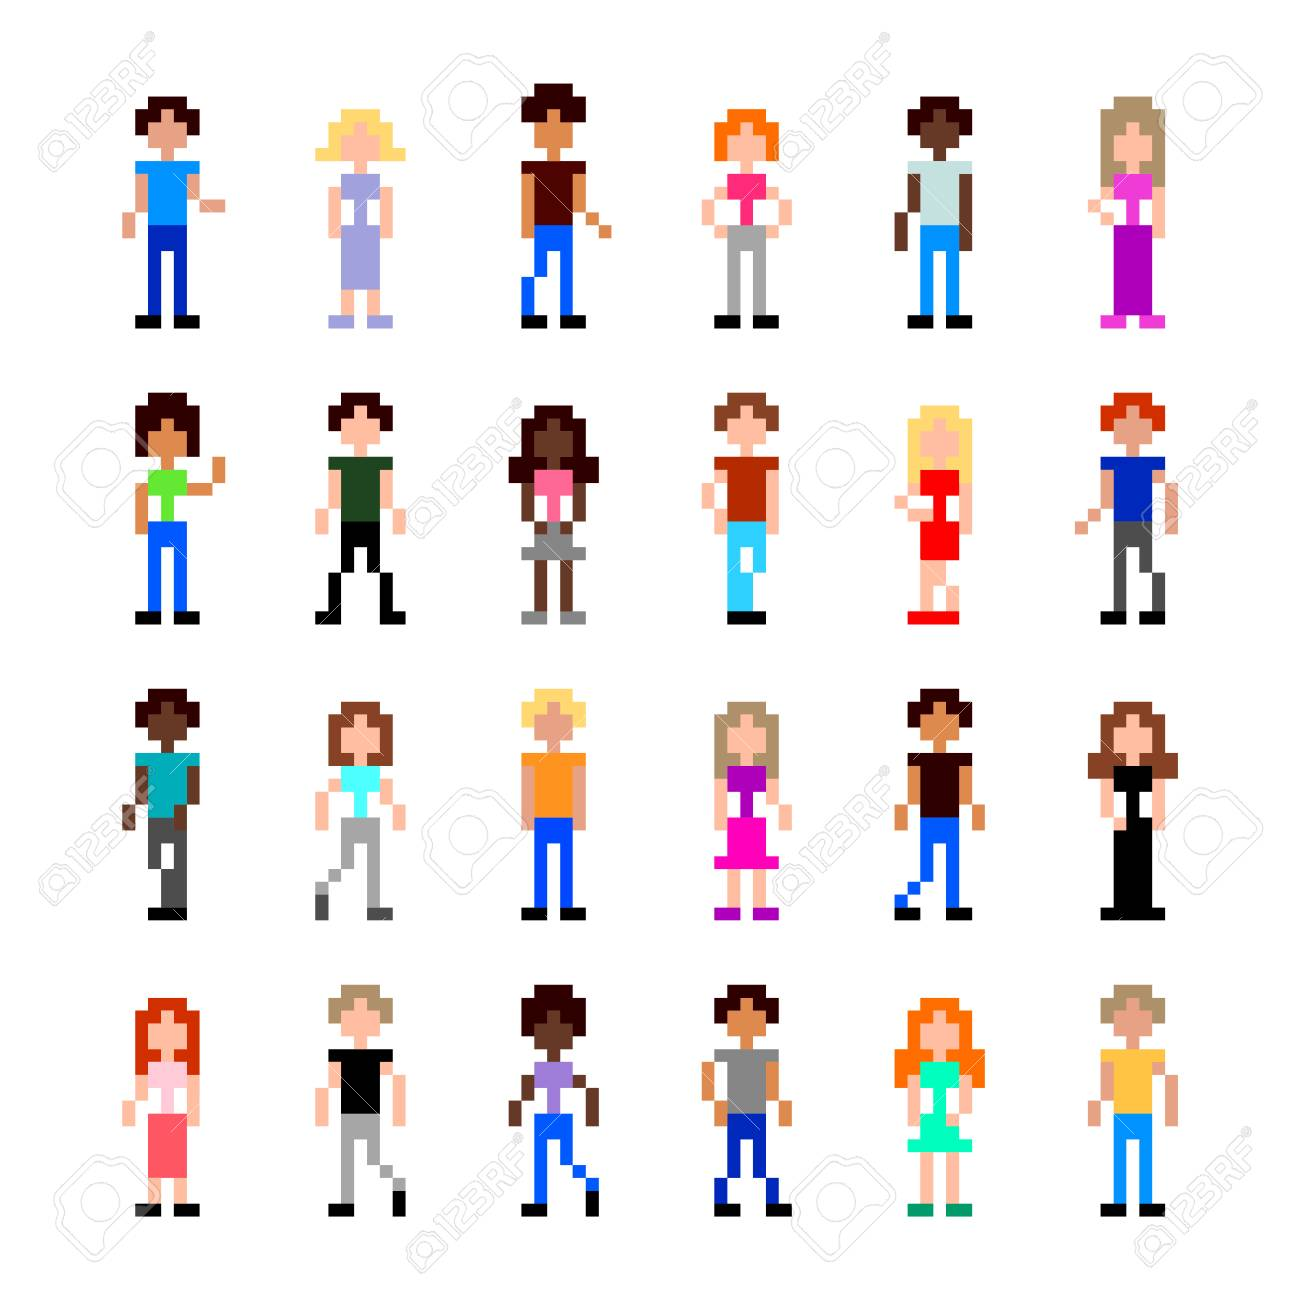 Pixel Art People For Game Set Detailed Illustration Isolated Royalty Free Cliparts Vectors And Stock Illustration Image 127520258